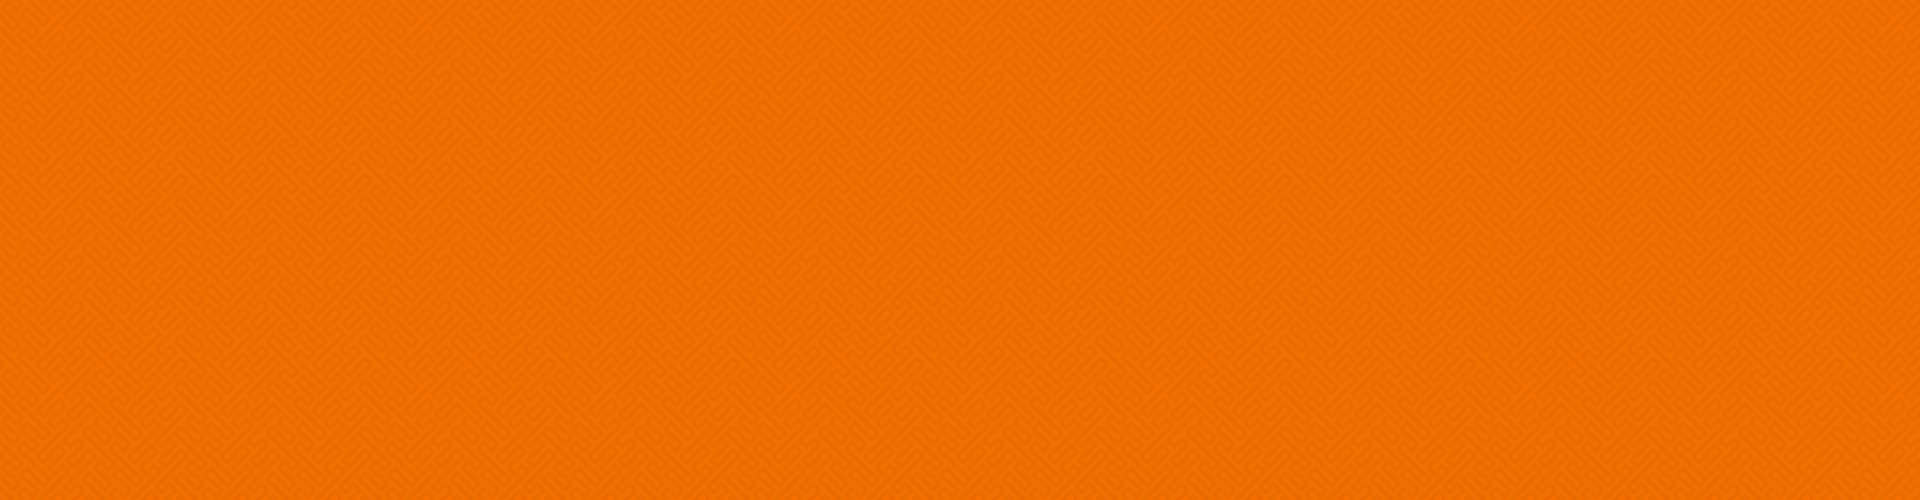 header-bg-orange